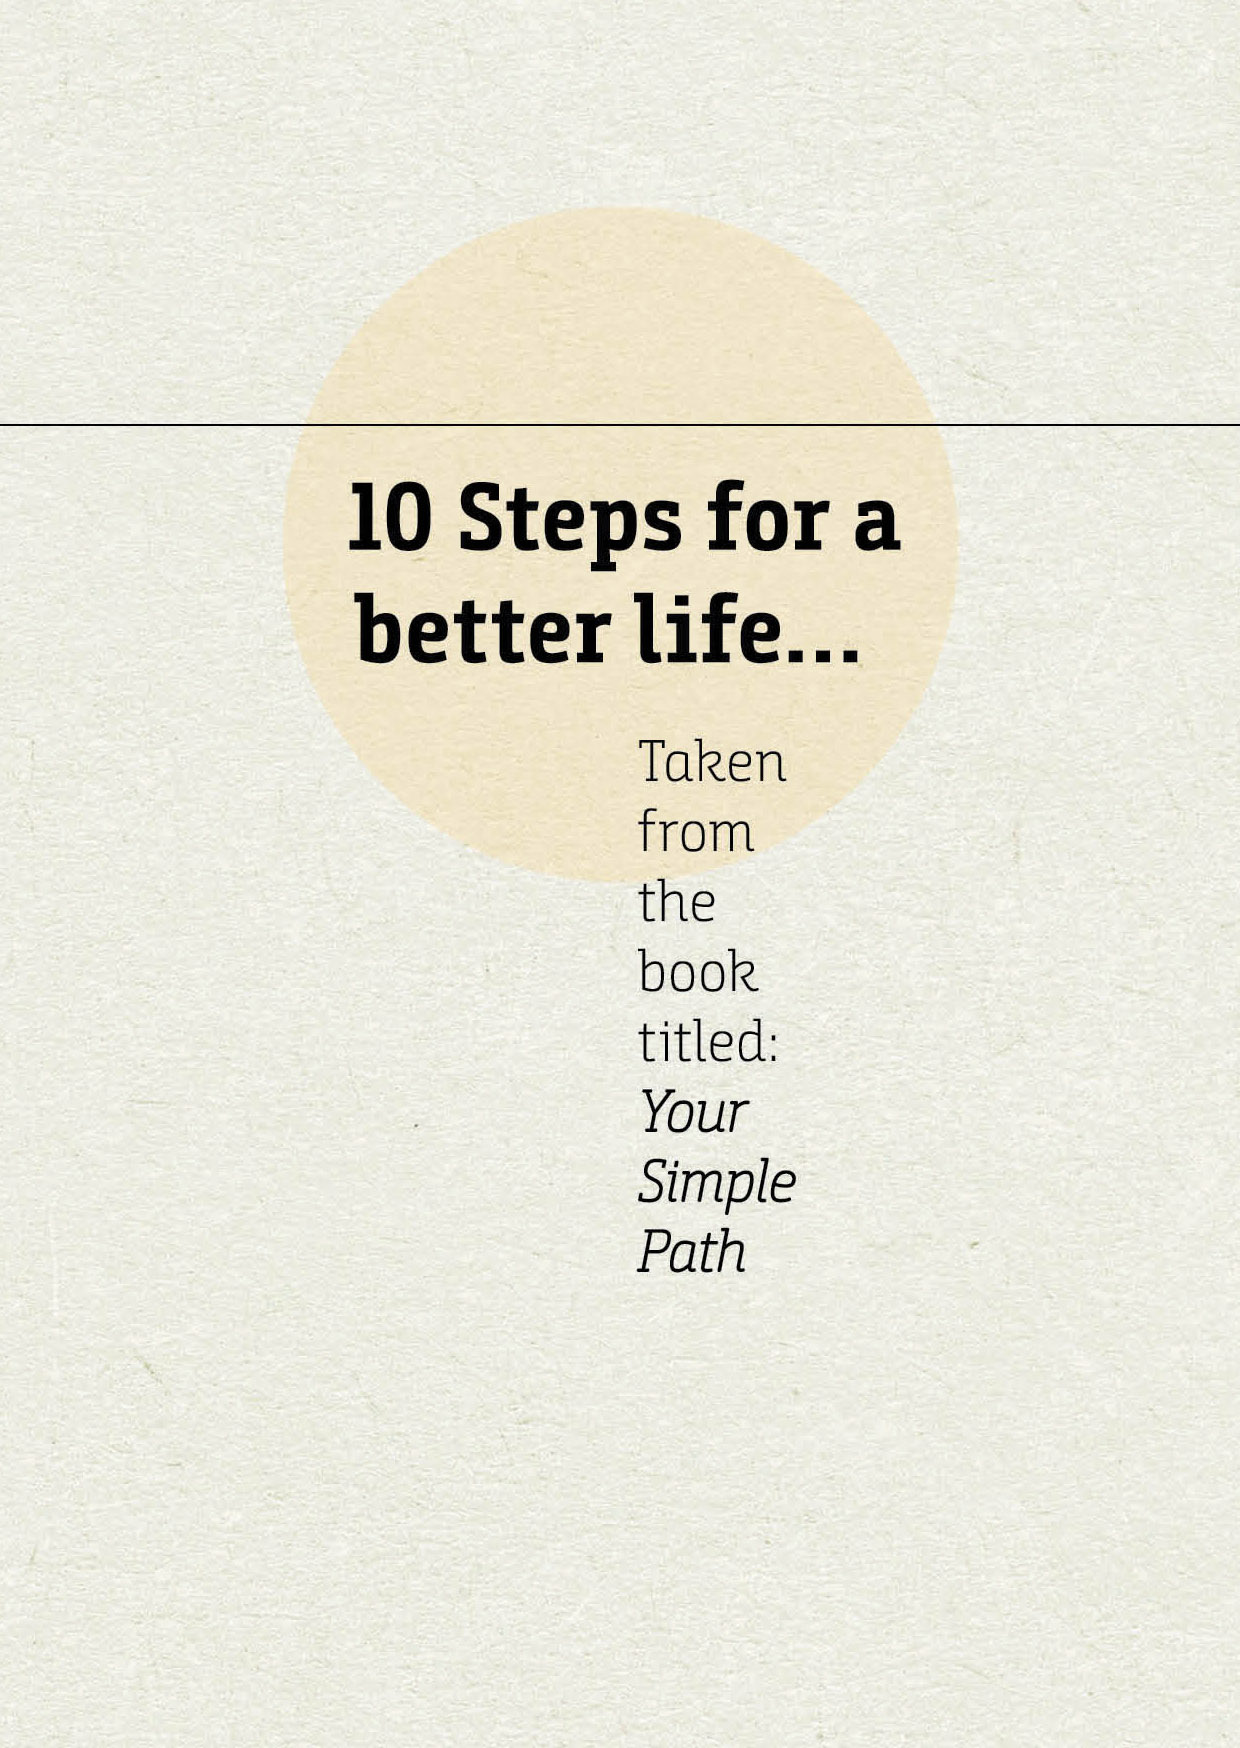 10 Steps for a better life